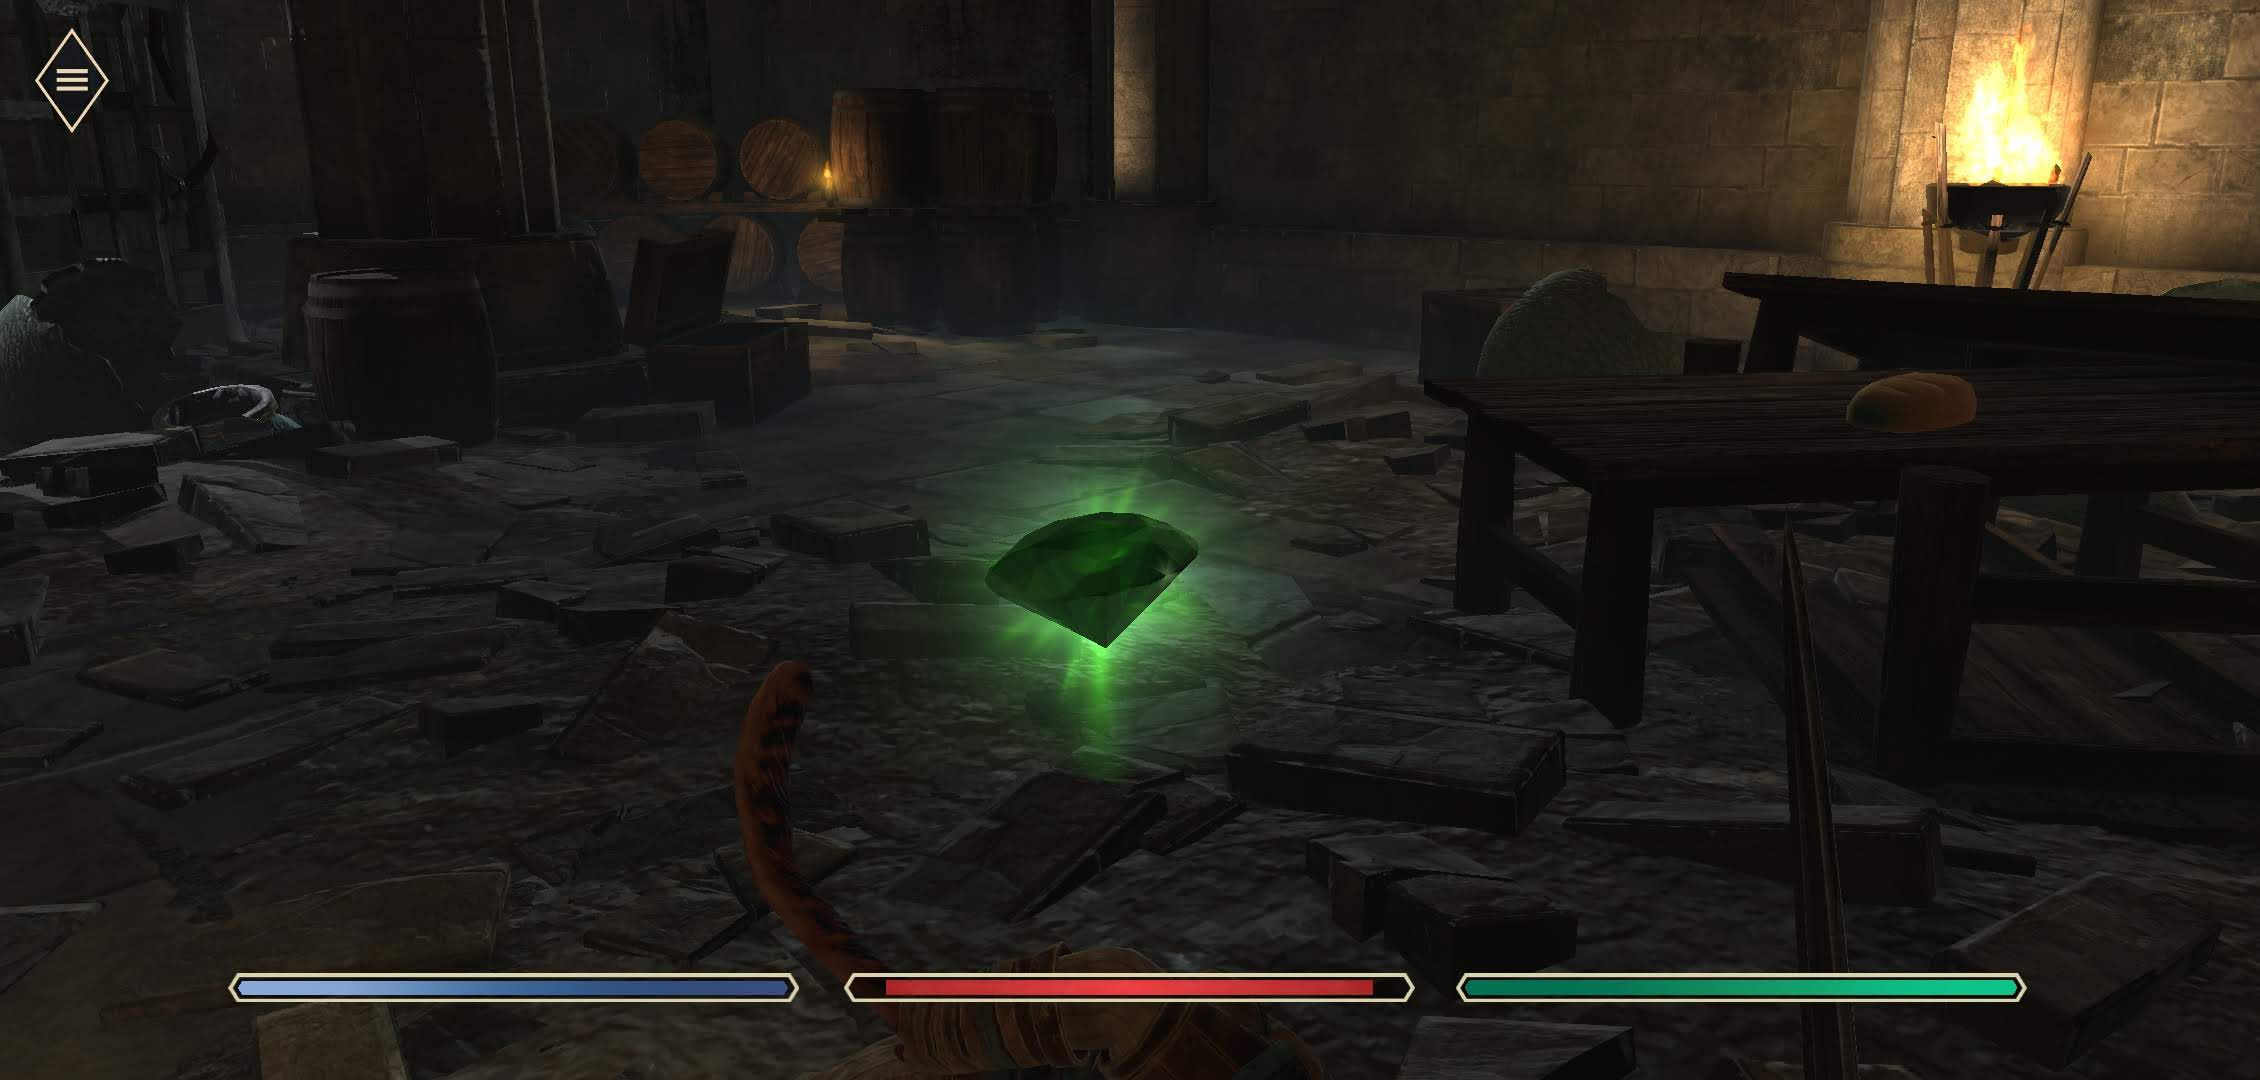 Elder Scrolls Blades gems: Everything you need to know about